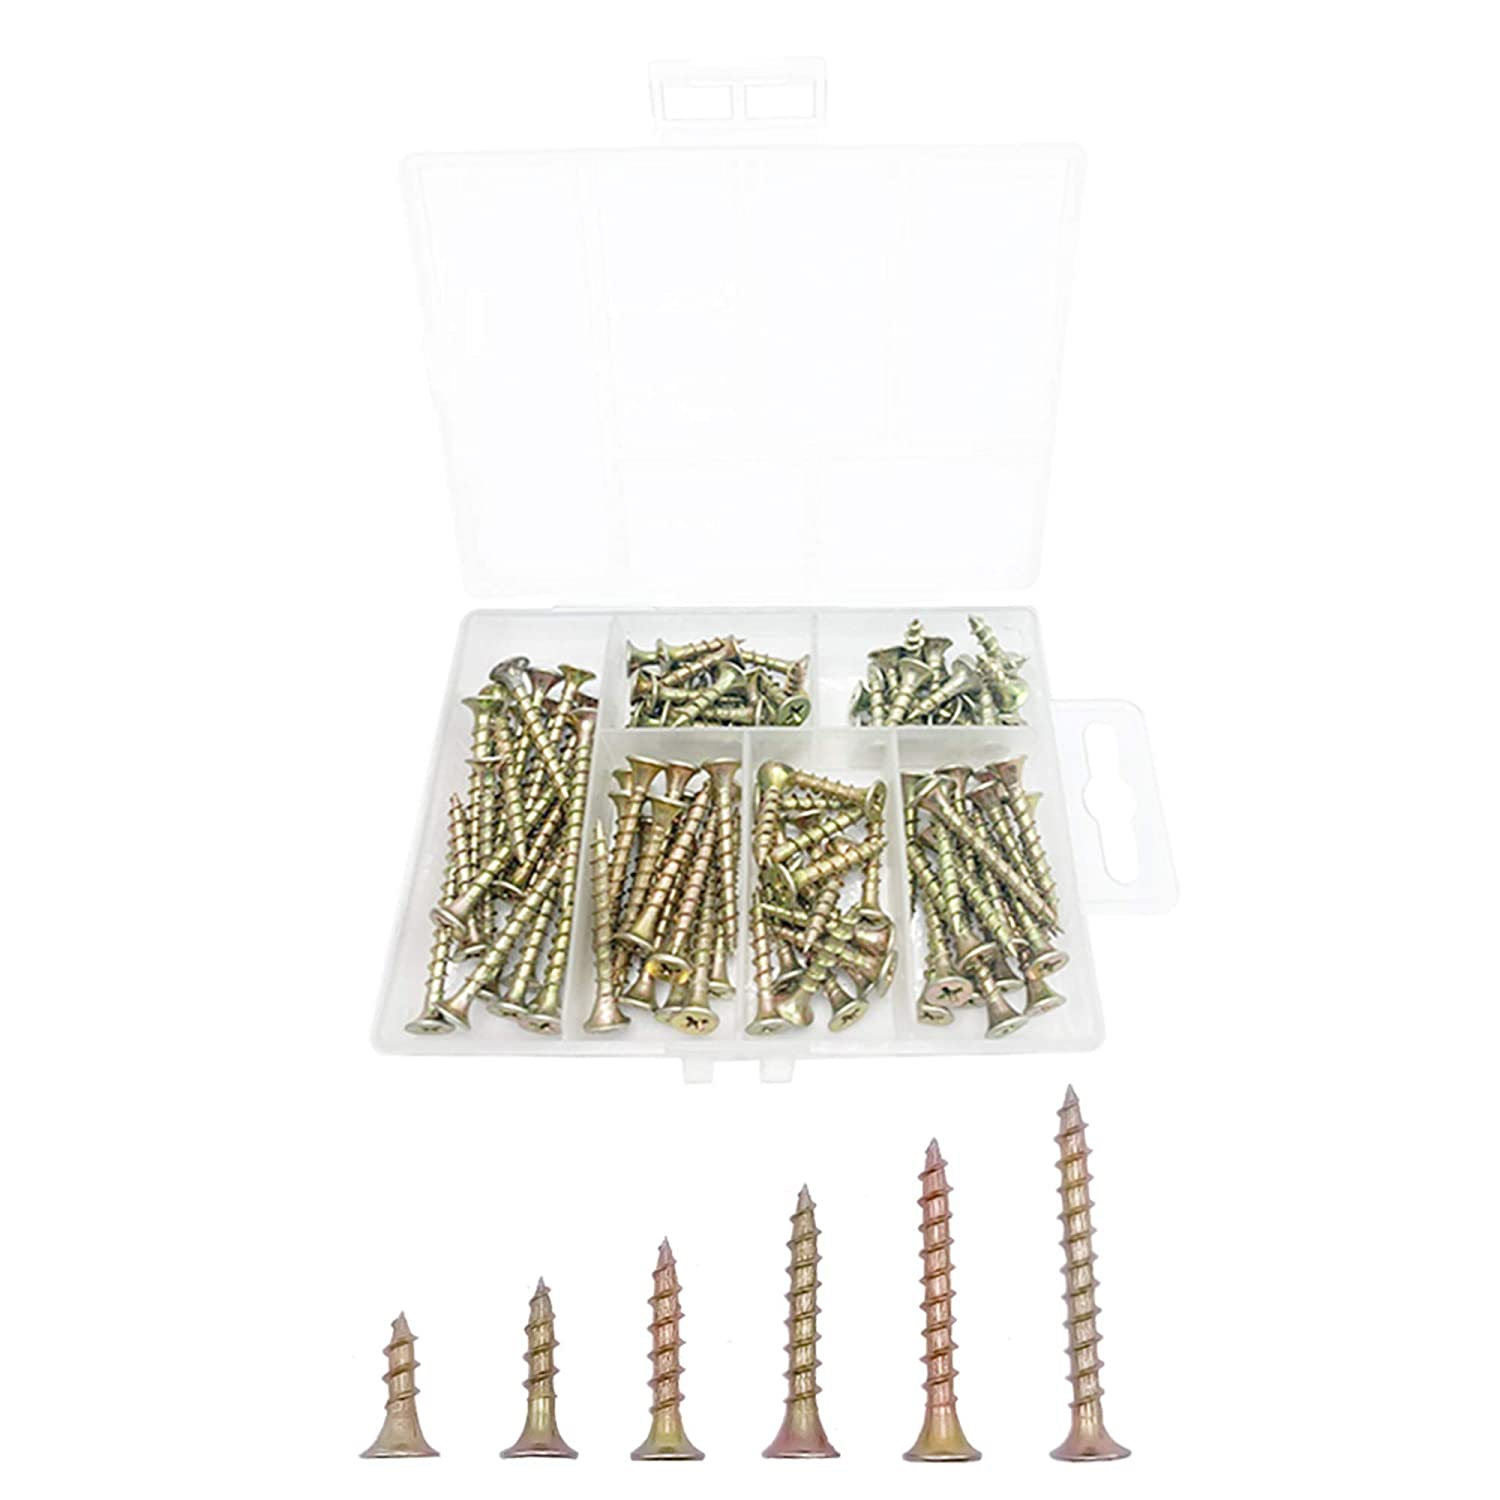 ECKJ Chipboard Drywall Screw Multi-Size Assortment Kit(120 PCS Box Packed, 5/8 to 1-5/8 inch) Coarse Thread Flat Head Phillips Drive Self Tapping Wood Screws Color Zinc Plated for Drywall Sheetrock